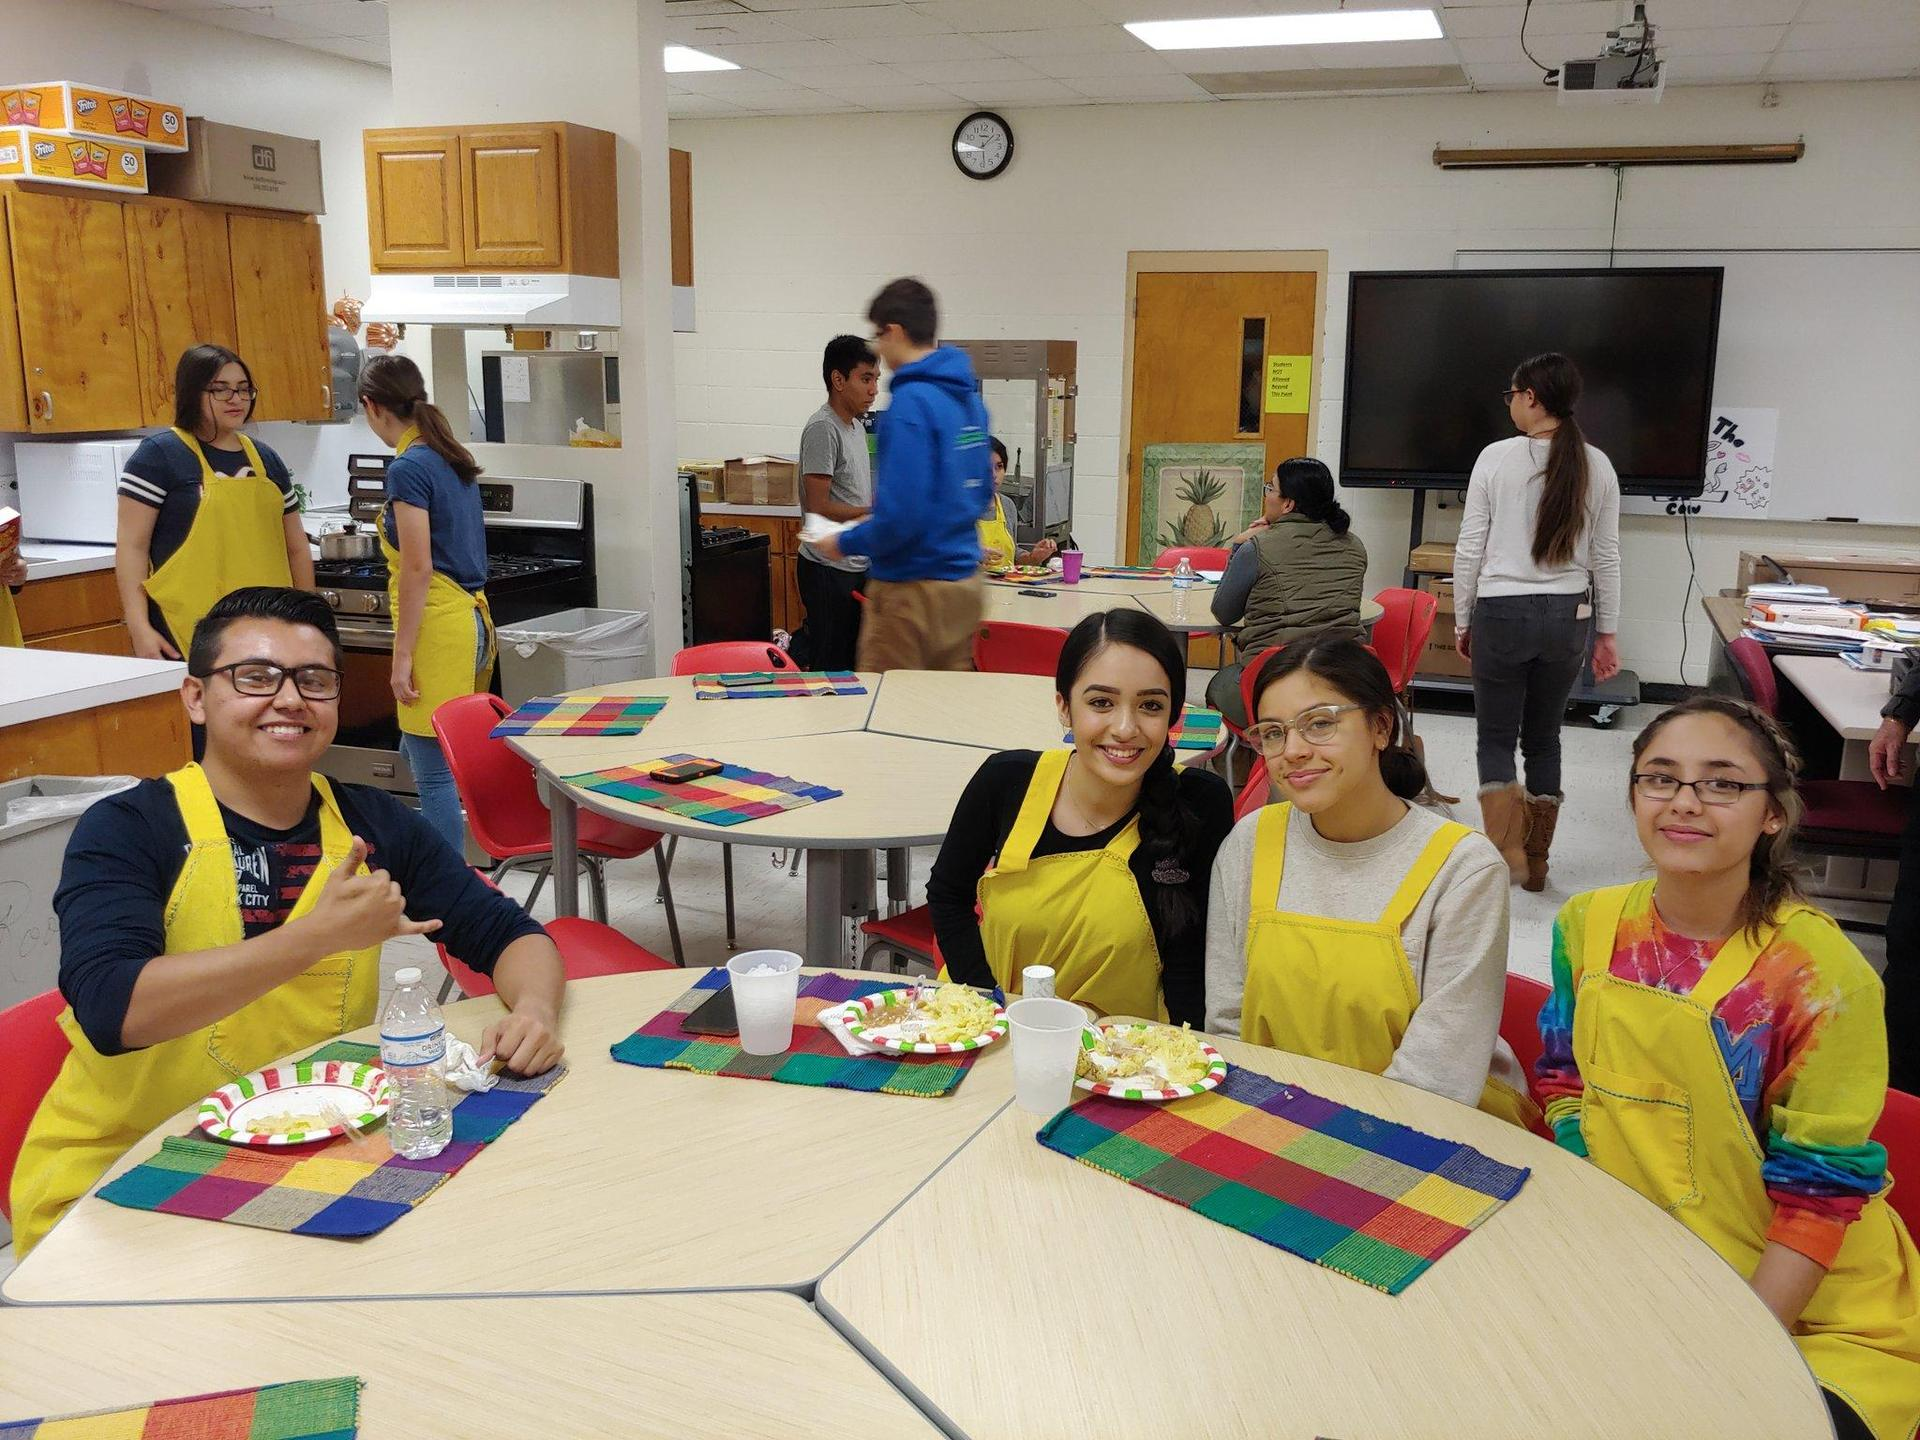 students in cooking aprons sitting in round table